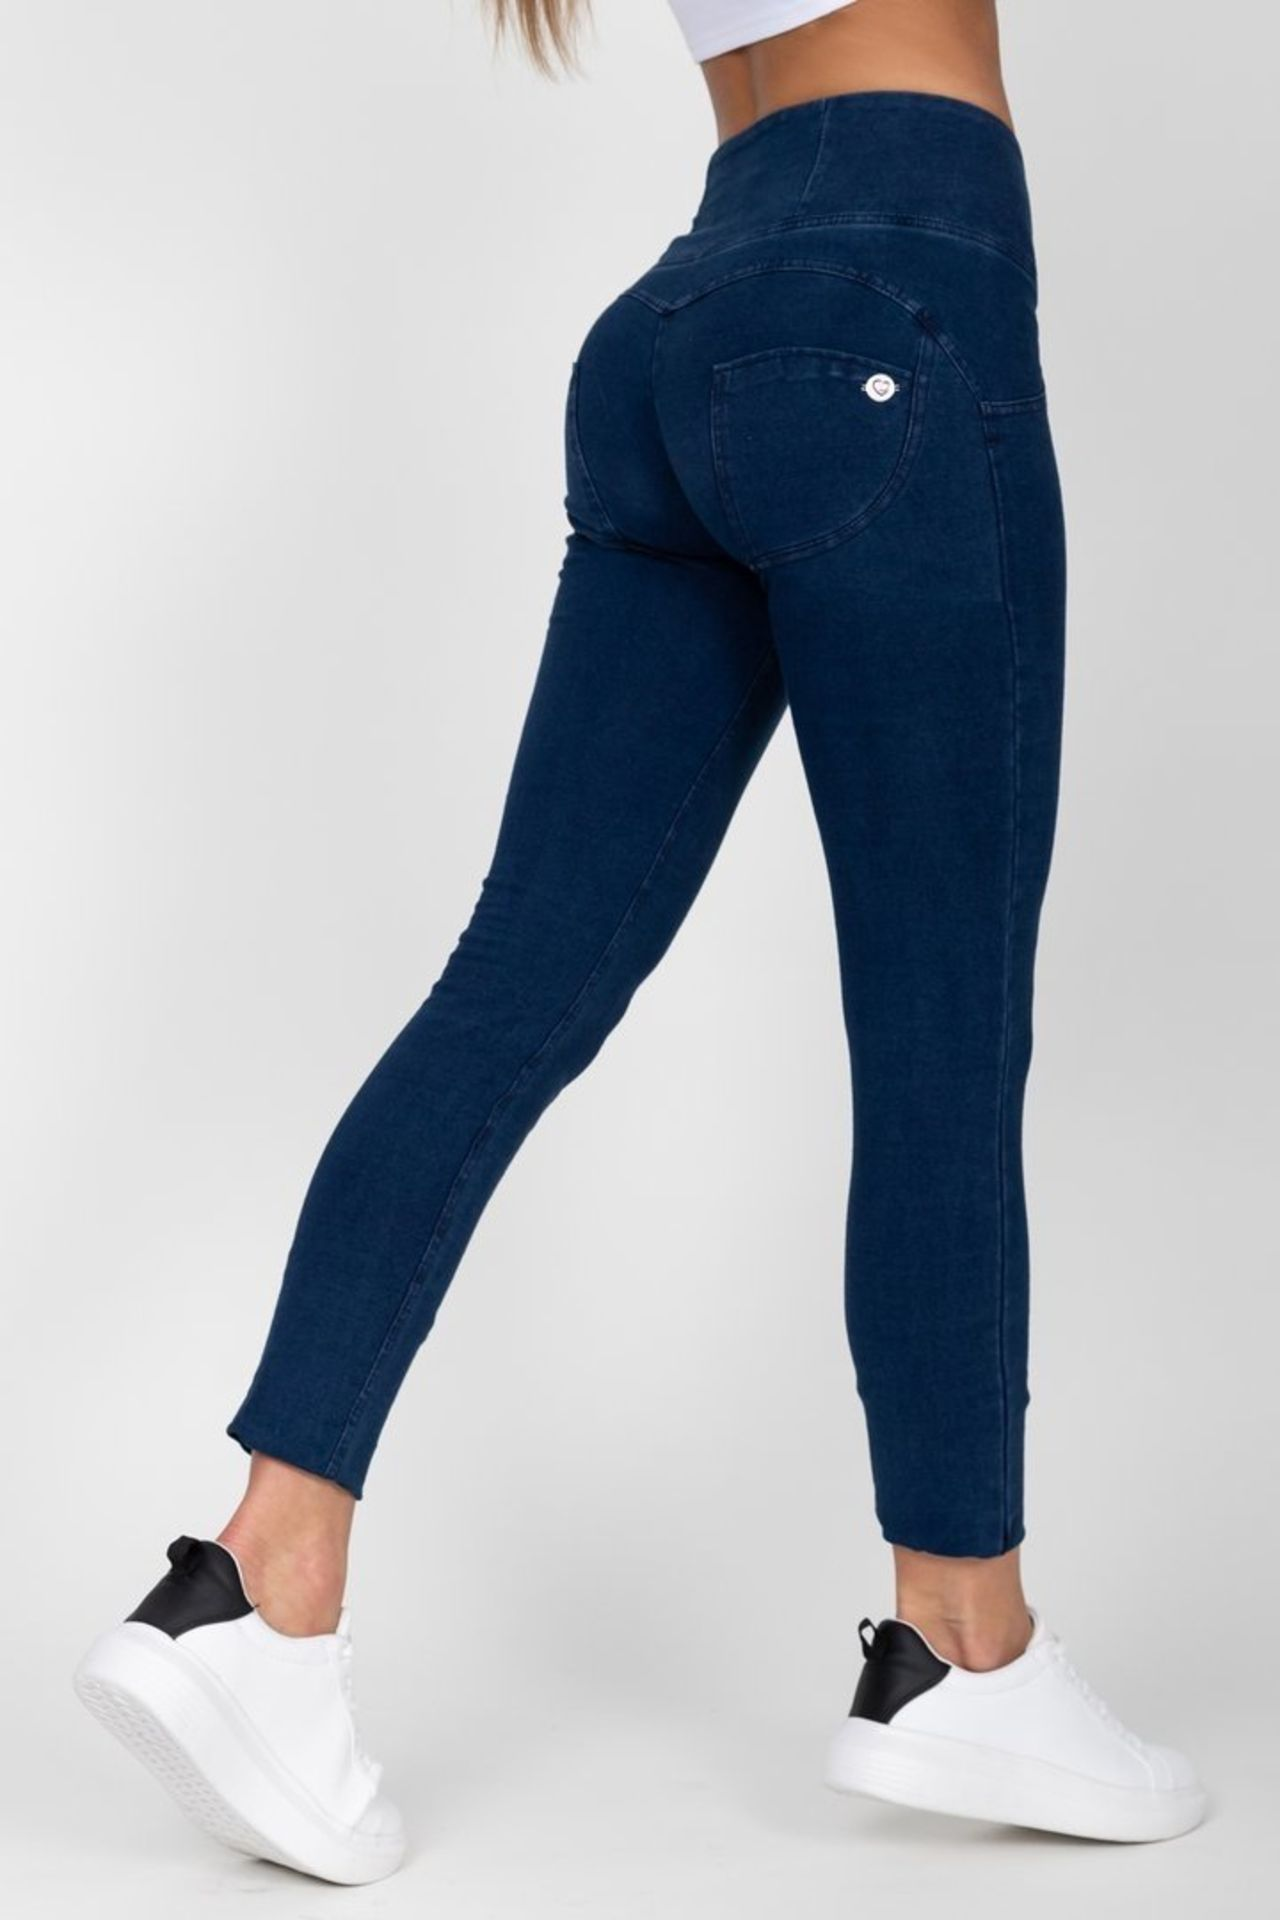 12 X BRAND NEW HUGZ JEANS DESIGNER BRANDED - ALL SIZE 6 - XS - IE. JEANS / FAUX LEATHERS / - Image 4 of 4